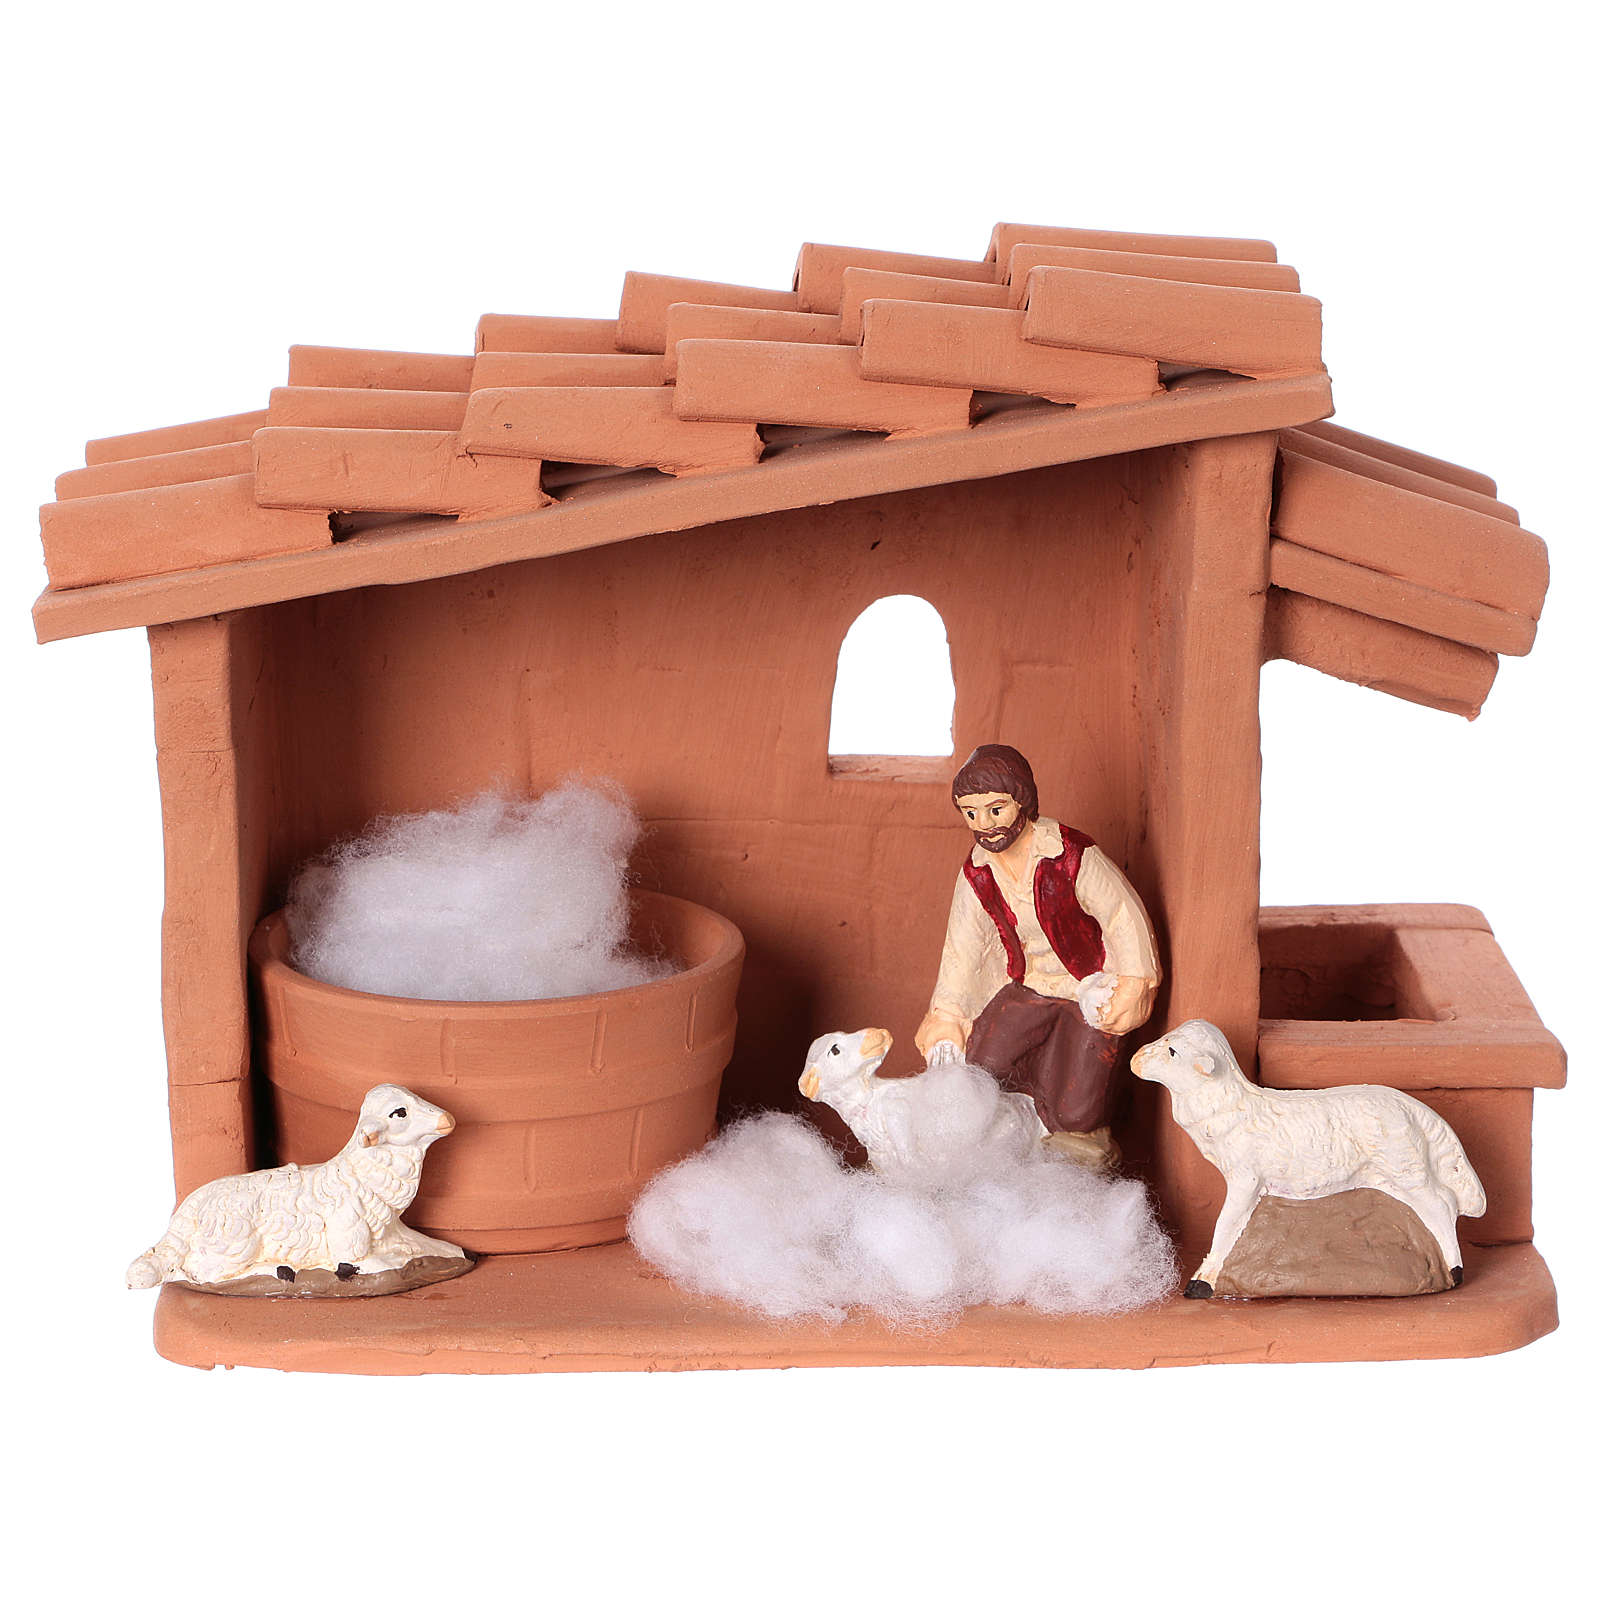 Sheep shearer in Deruta terracotta, 10 cm nativity 4